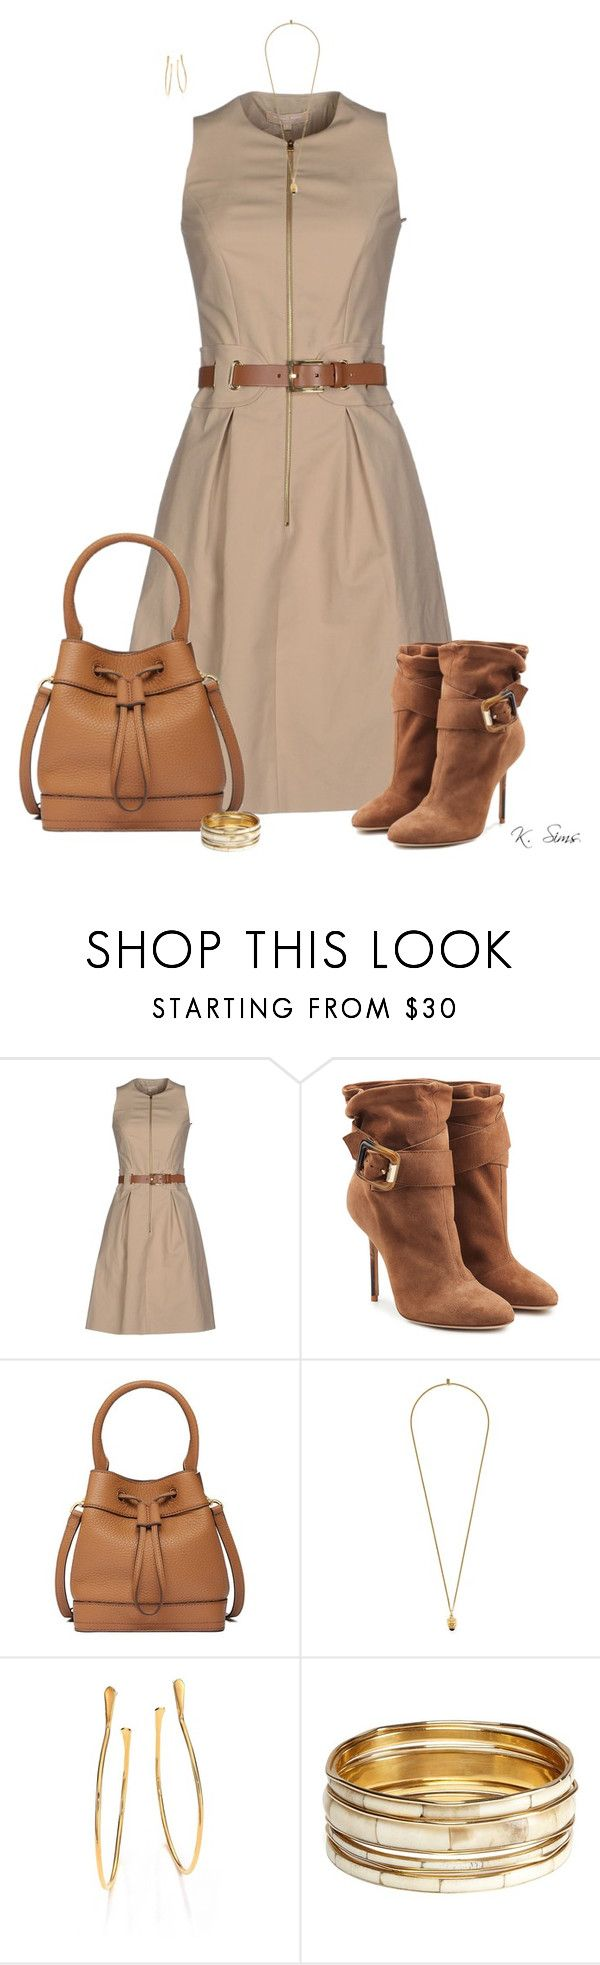 """Saturday"" by ksims-1 ❤ liked on Polyvore featuring Michael Kors, Burberry, Tory Burch, Ela Stone, Chloé and Aqua"